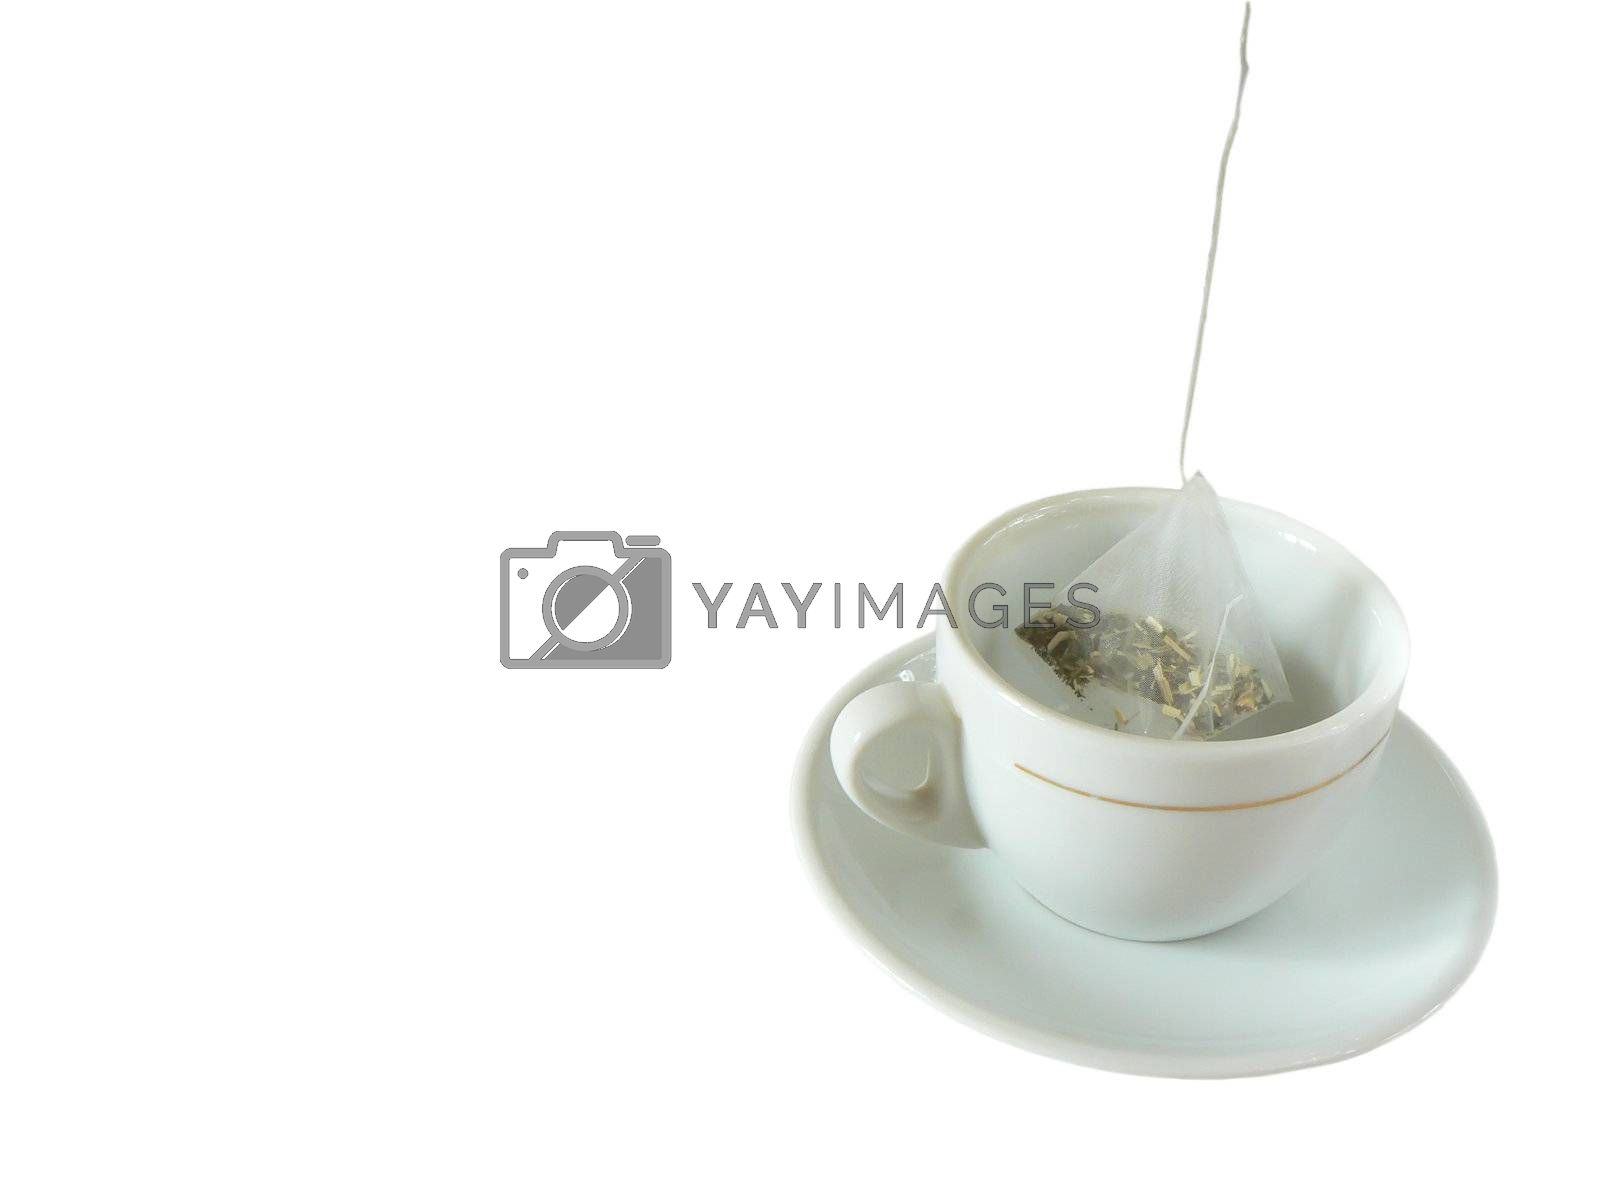 Cup and tea bag isolated on white background